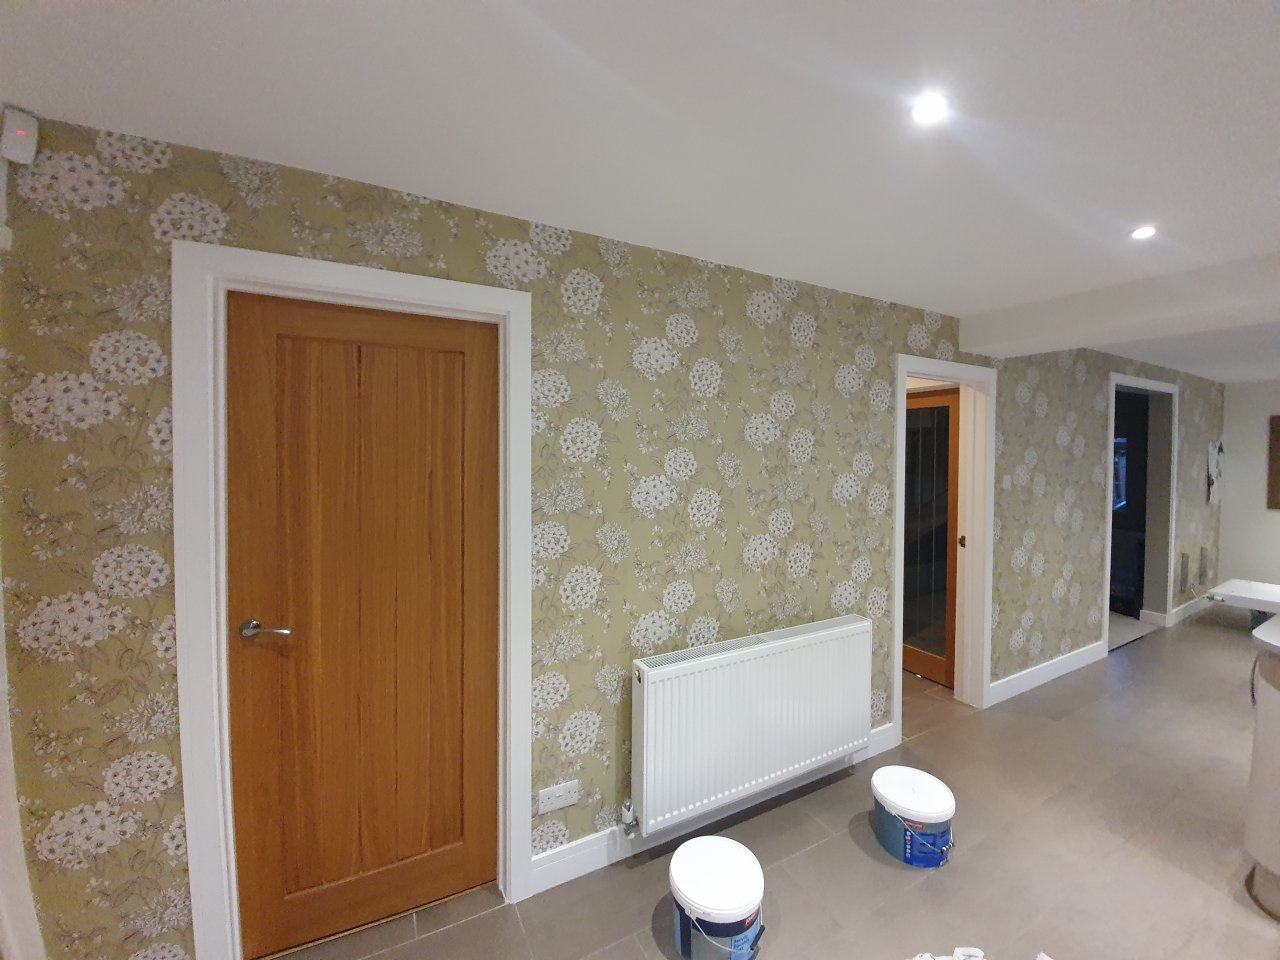 A kitchen prior to being decorated